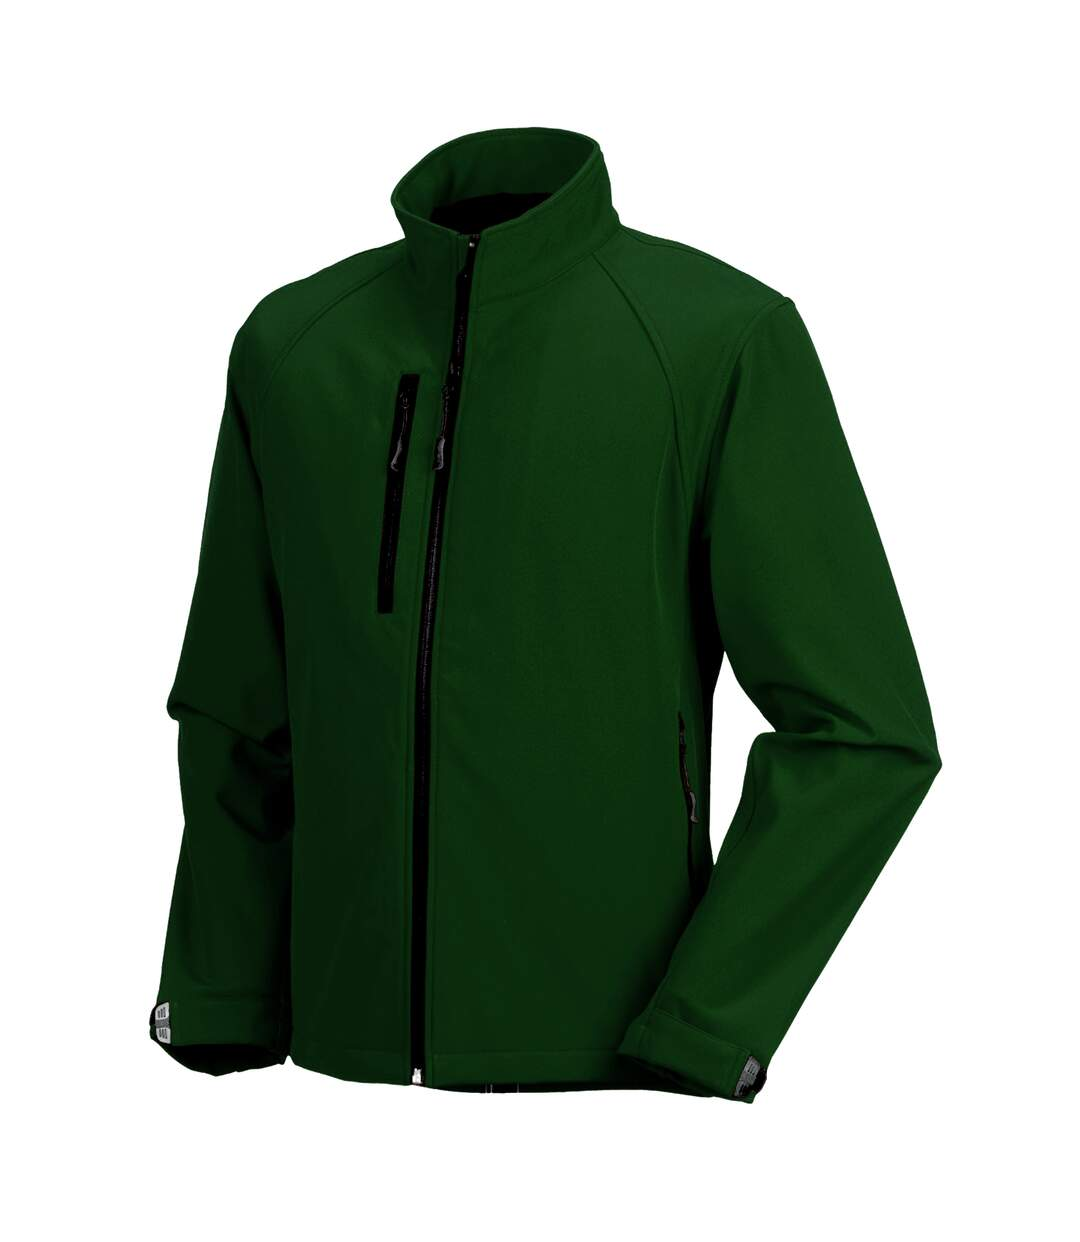 Russell Mens Water Resistant & Windproof Softshell Jacket (Bottle Green) - UTBC562